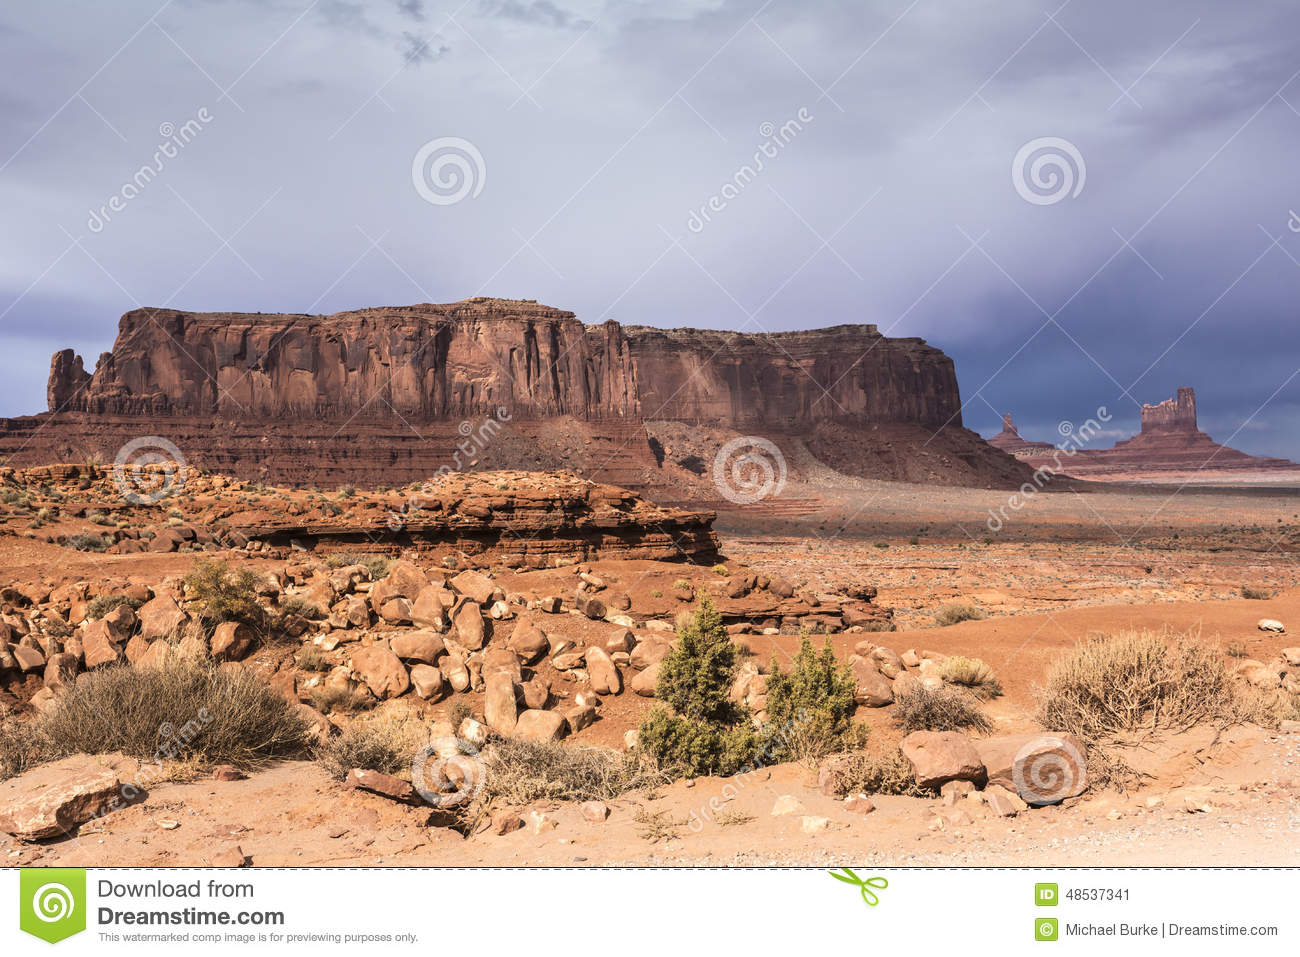 Colorado Plateau clipart #8, Download drawings